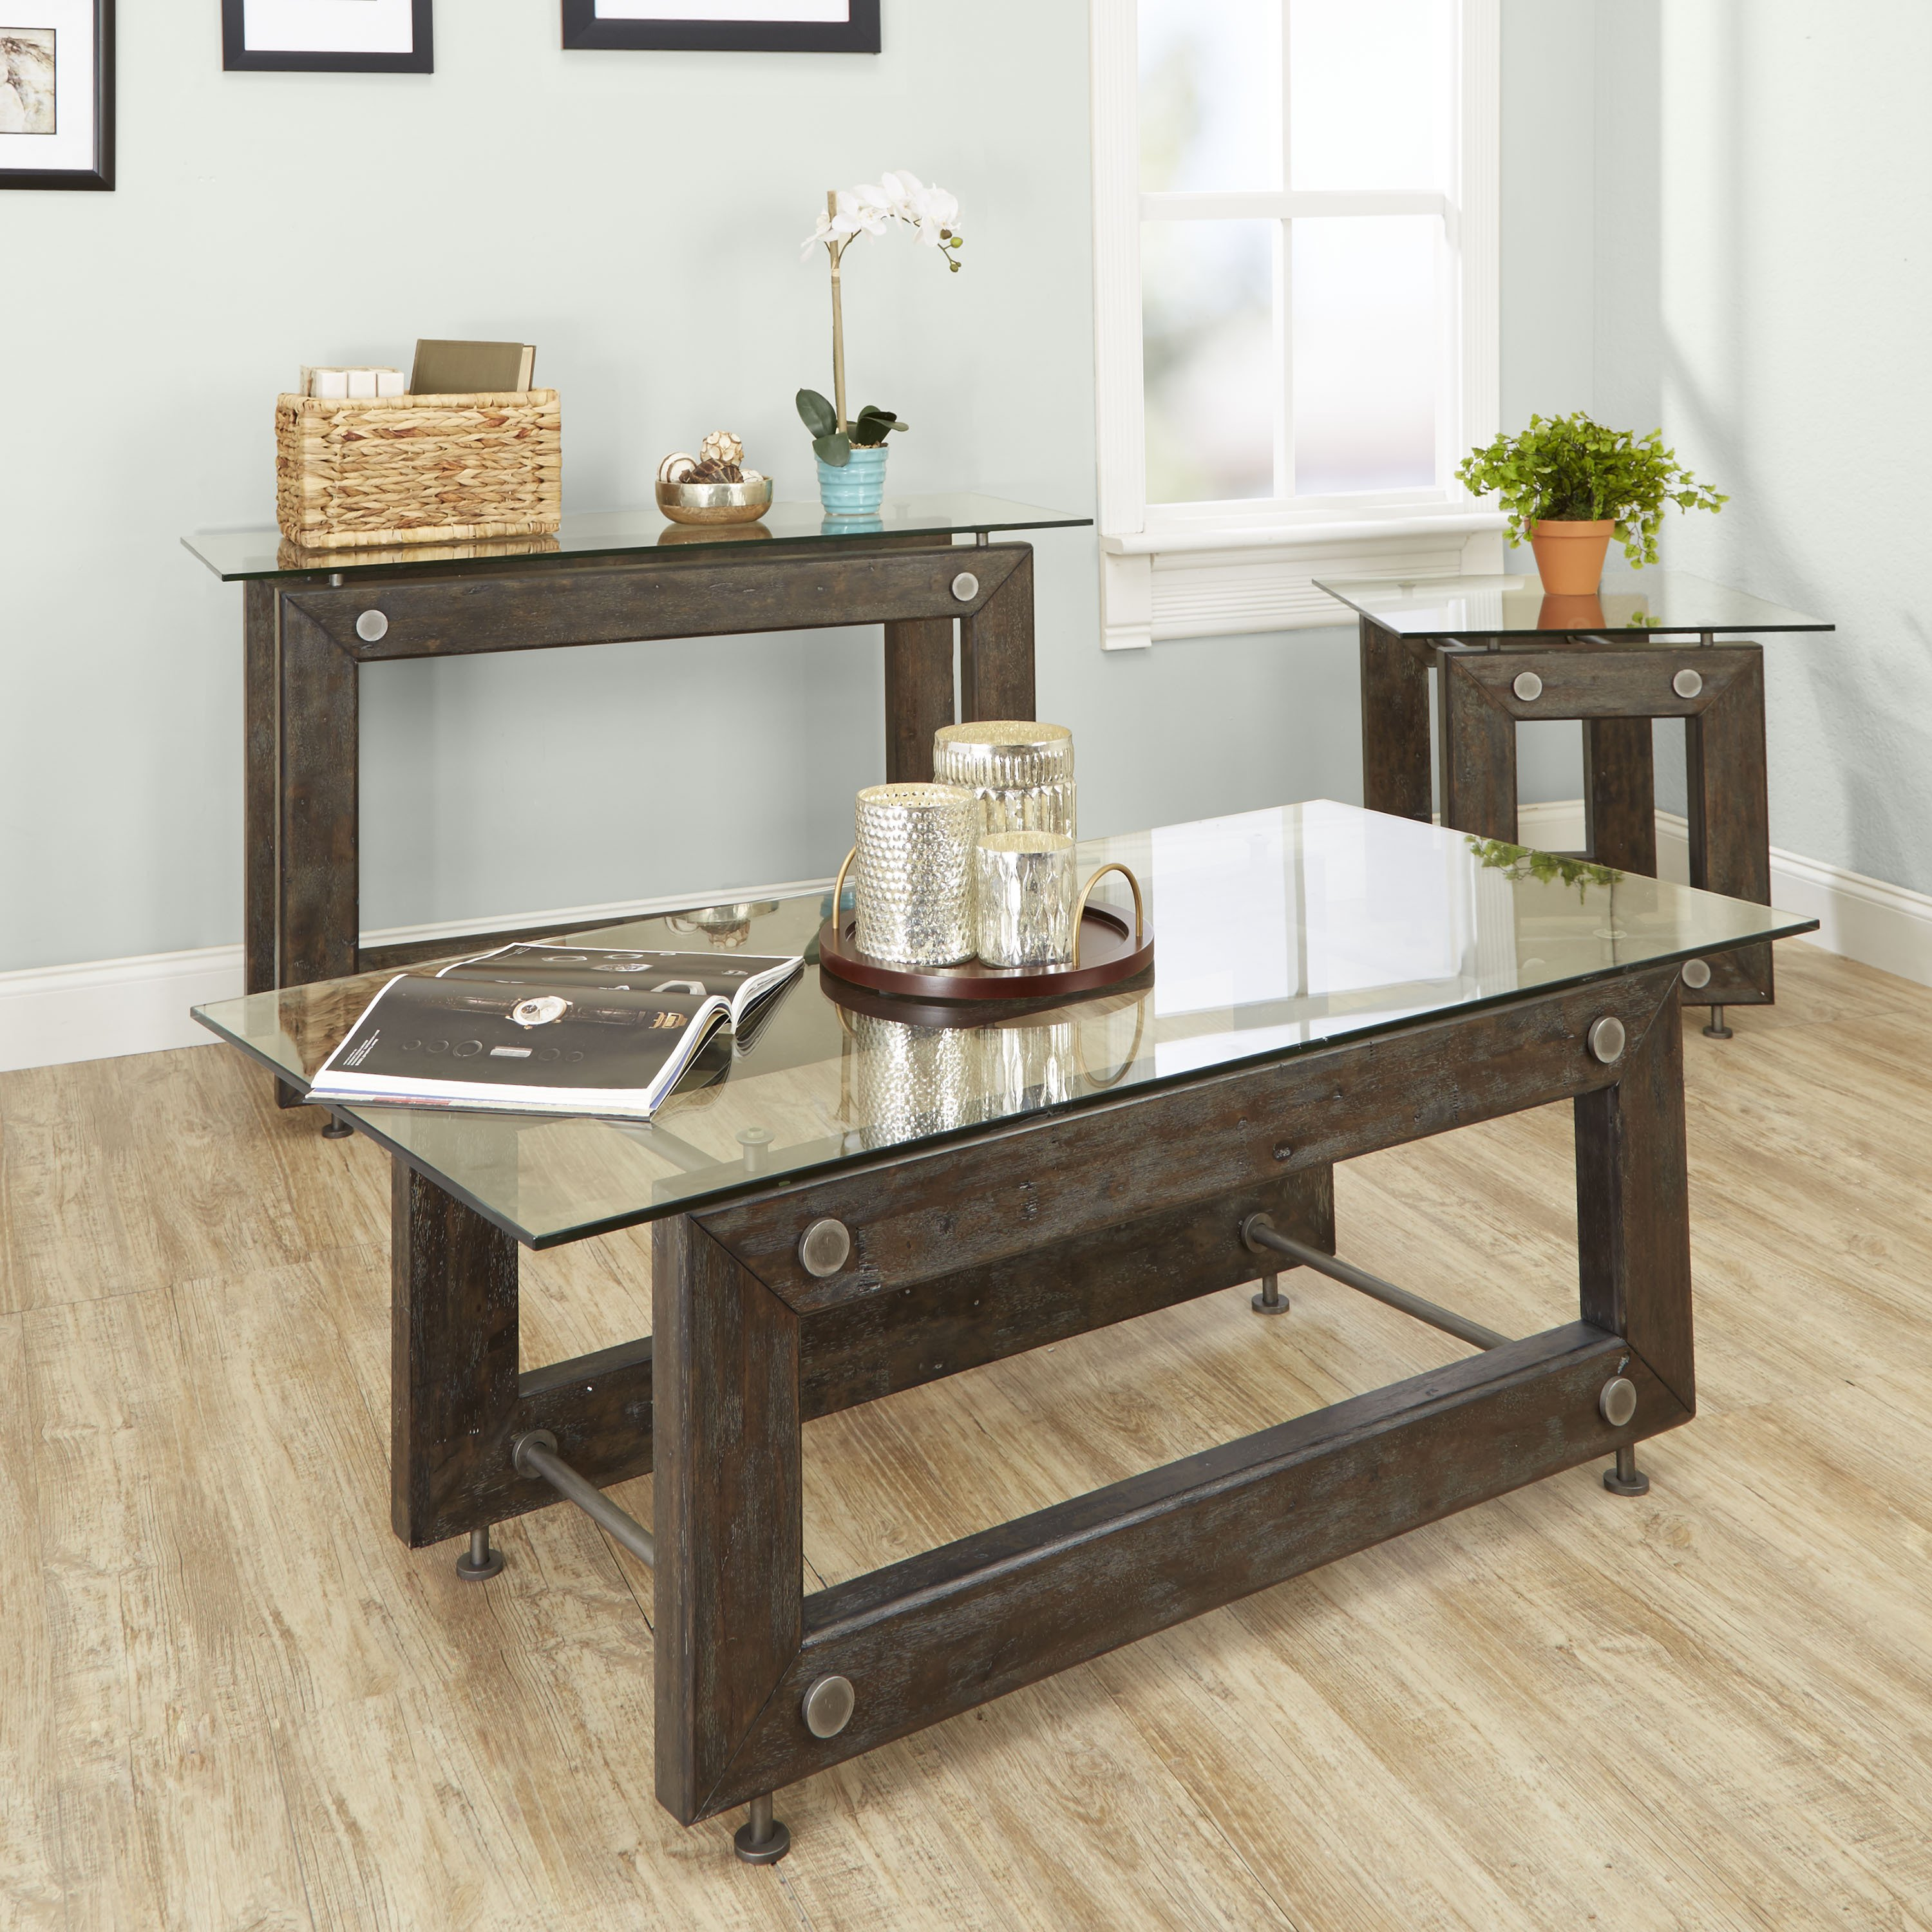 knox industrial collection coffee table silverwood free accent shipping today glass bedside lockers contemporary desk lamps living room furniture tables grey night console vintage